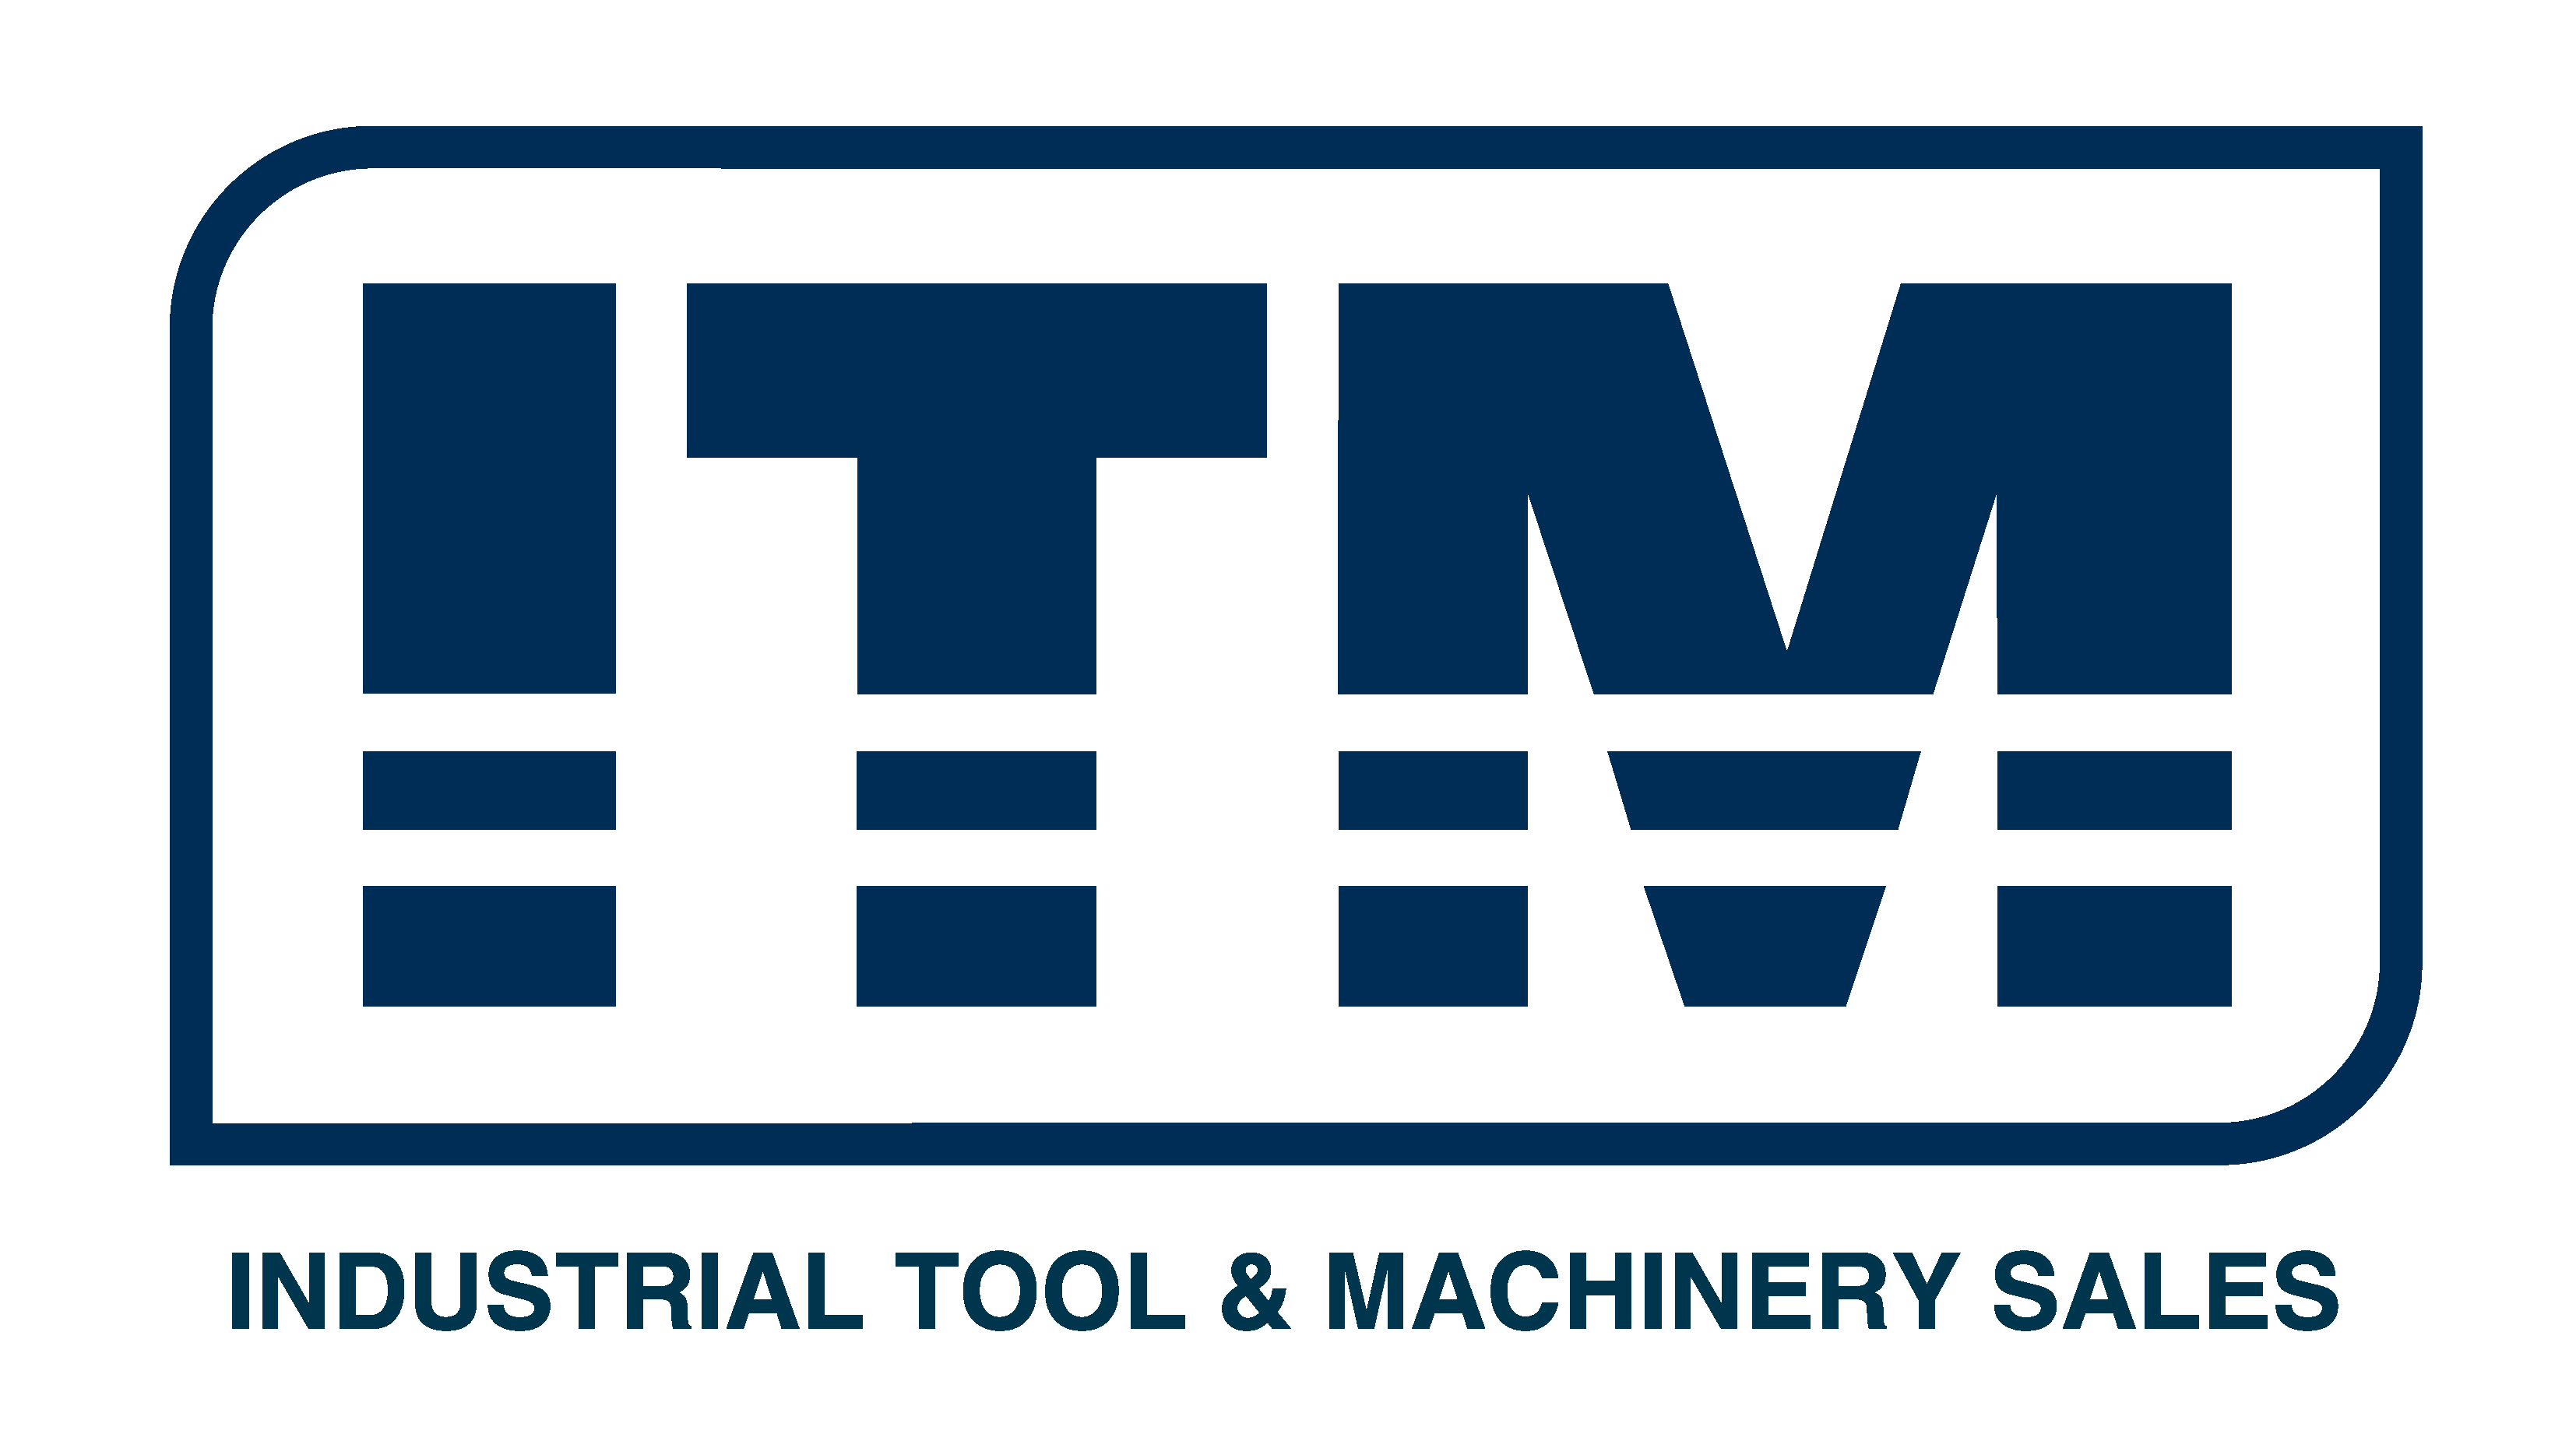 ITM - Industrial Tool & Machinery